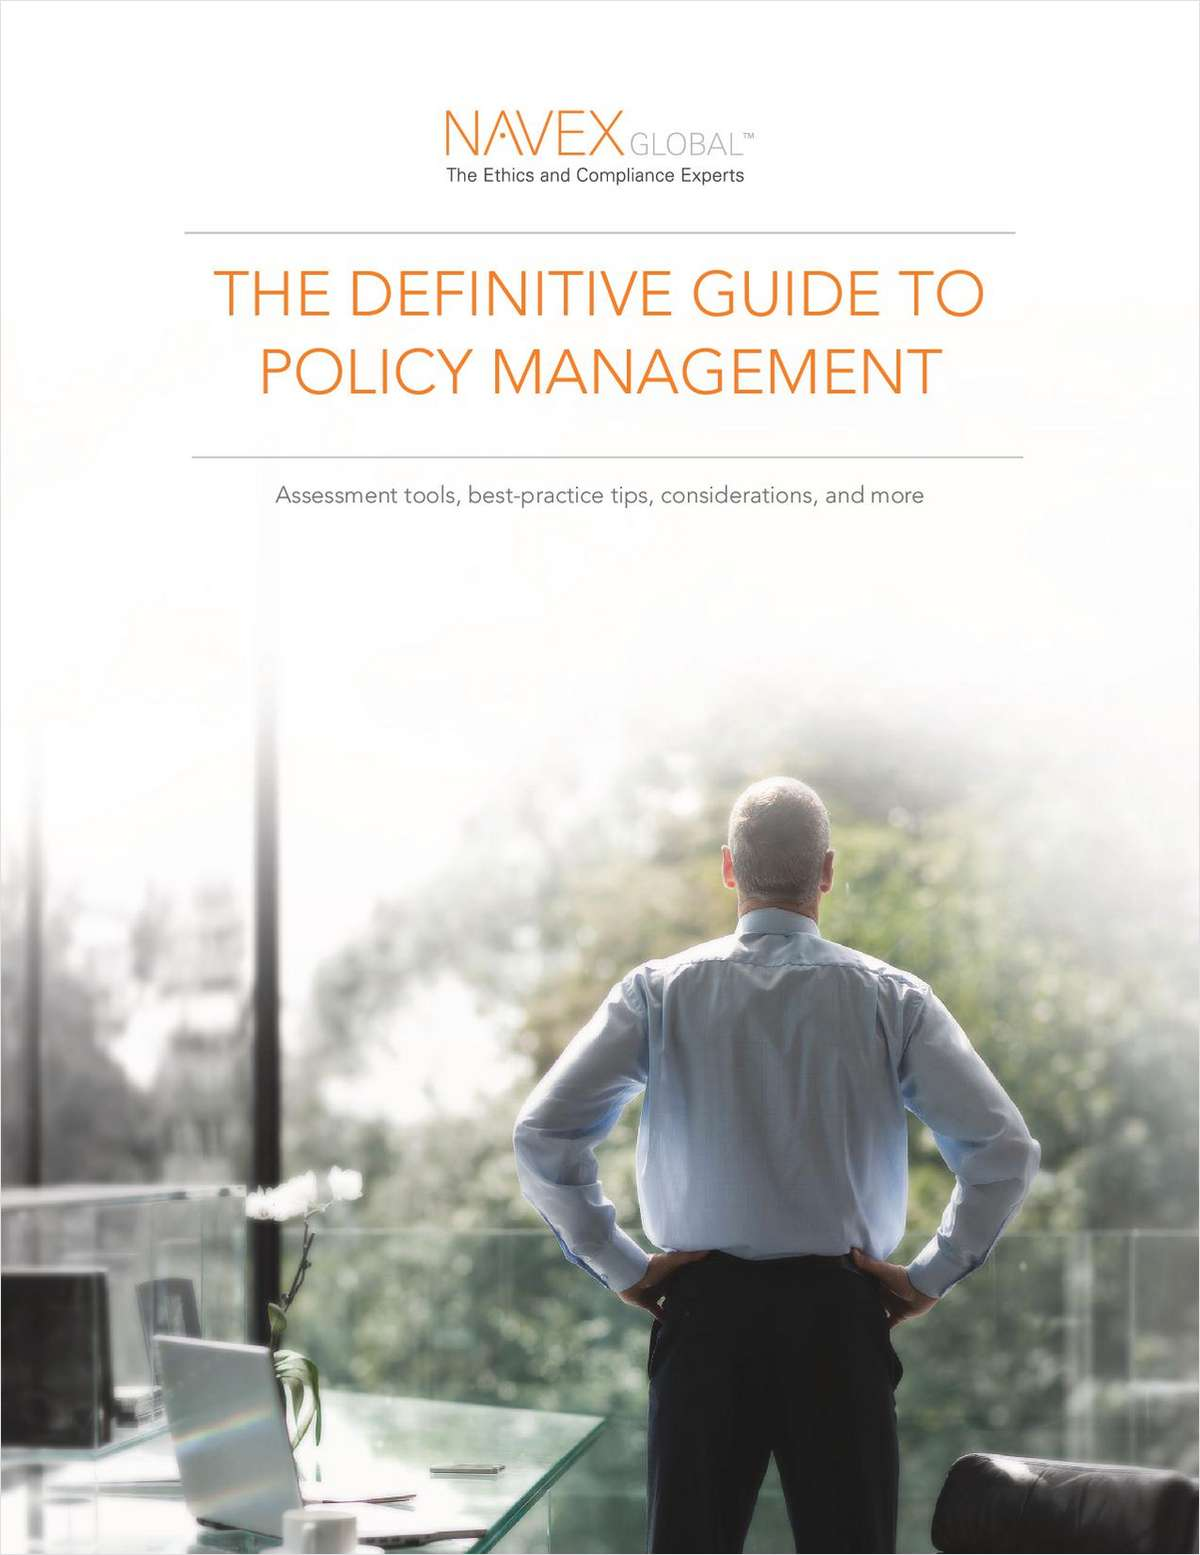 The Definitive Guide to Policy Management